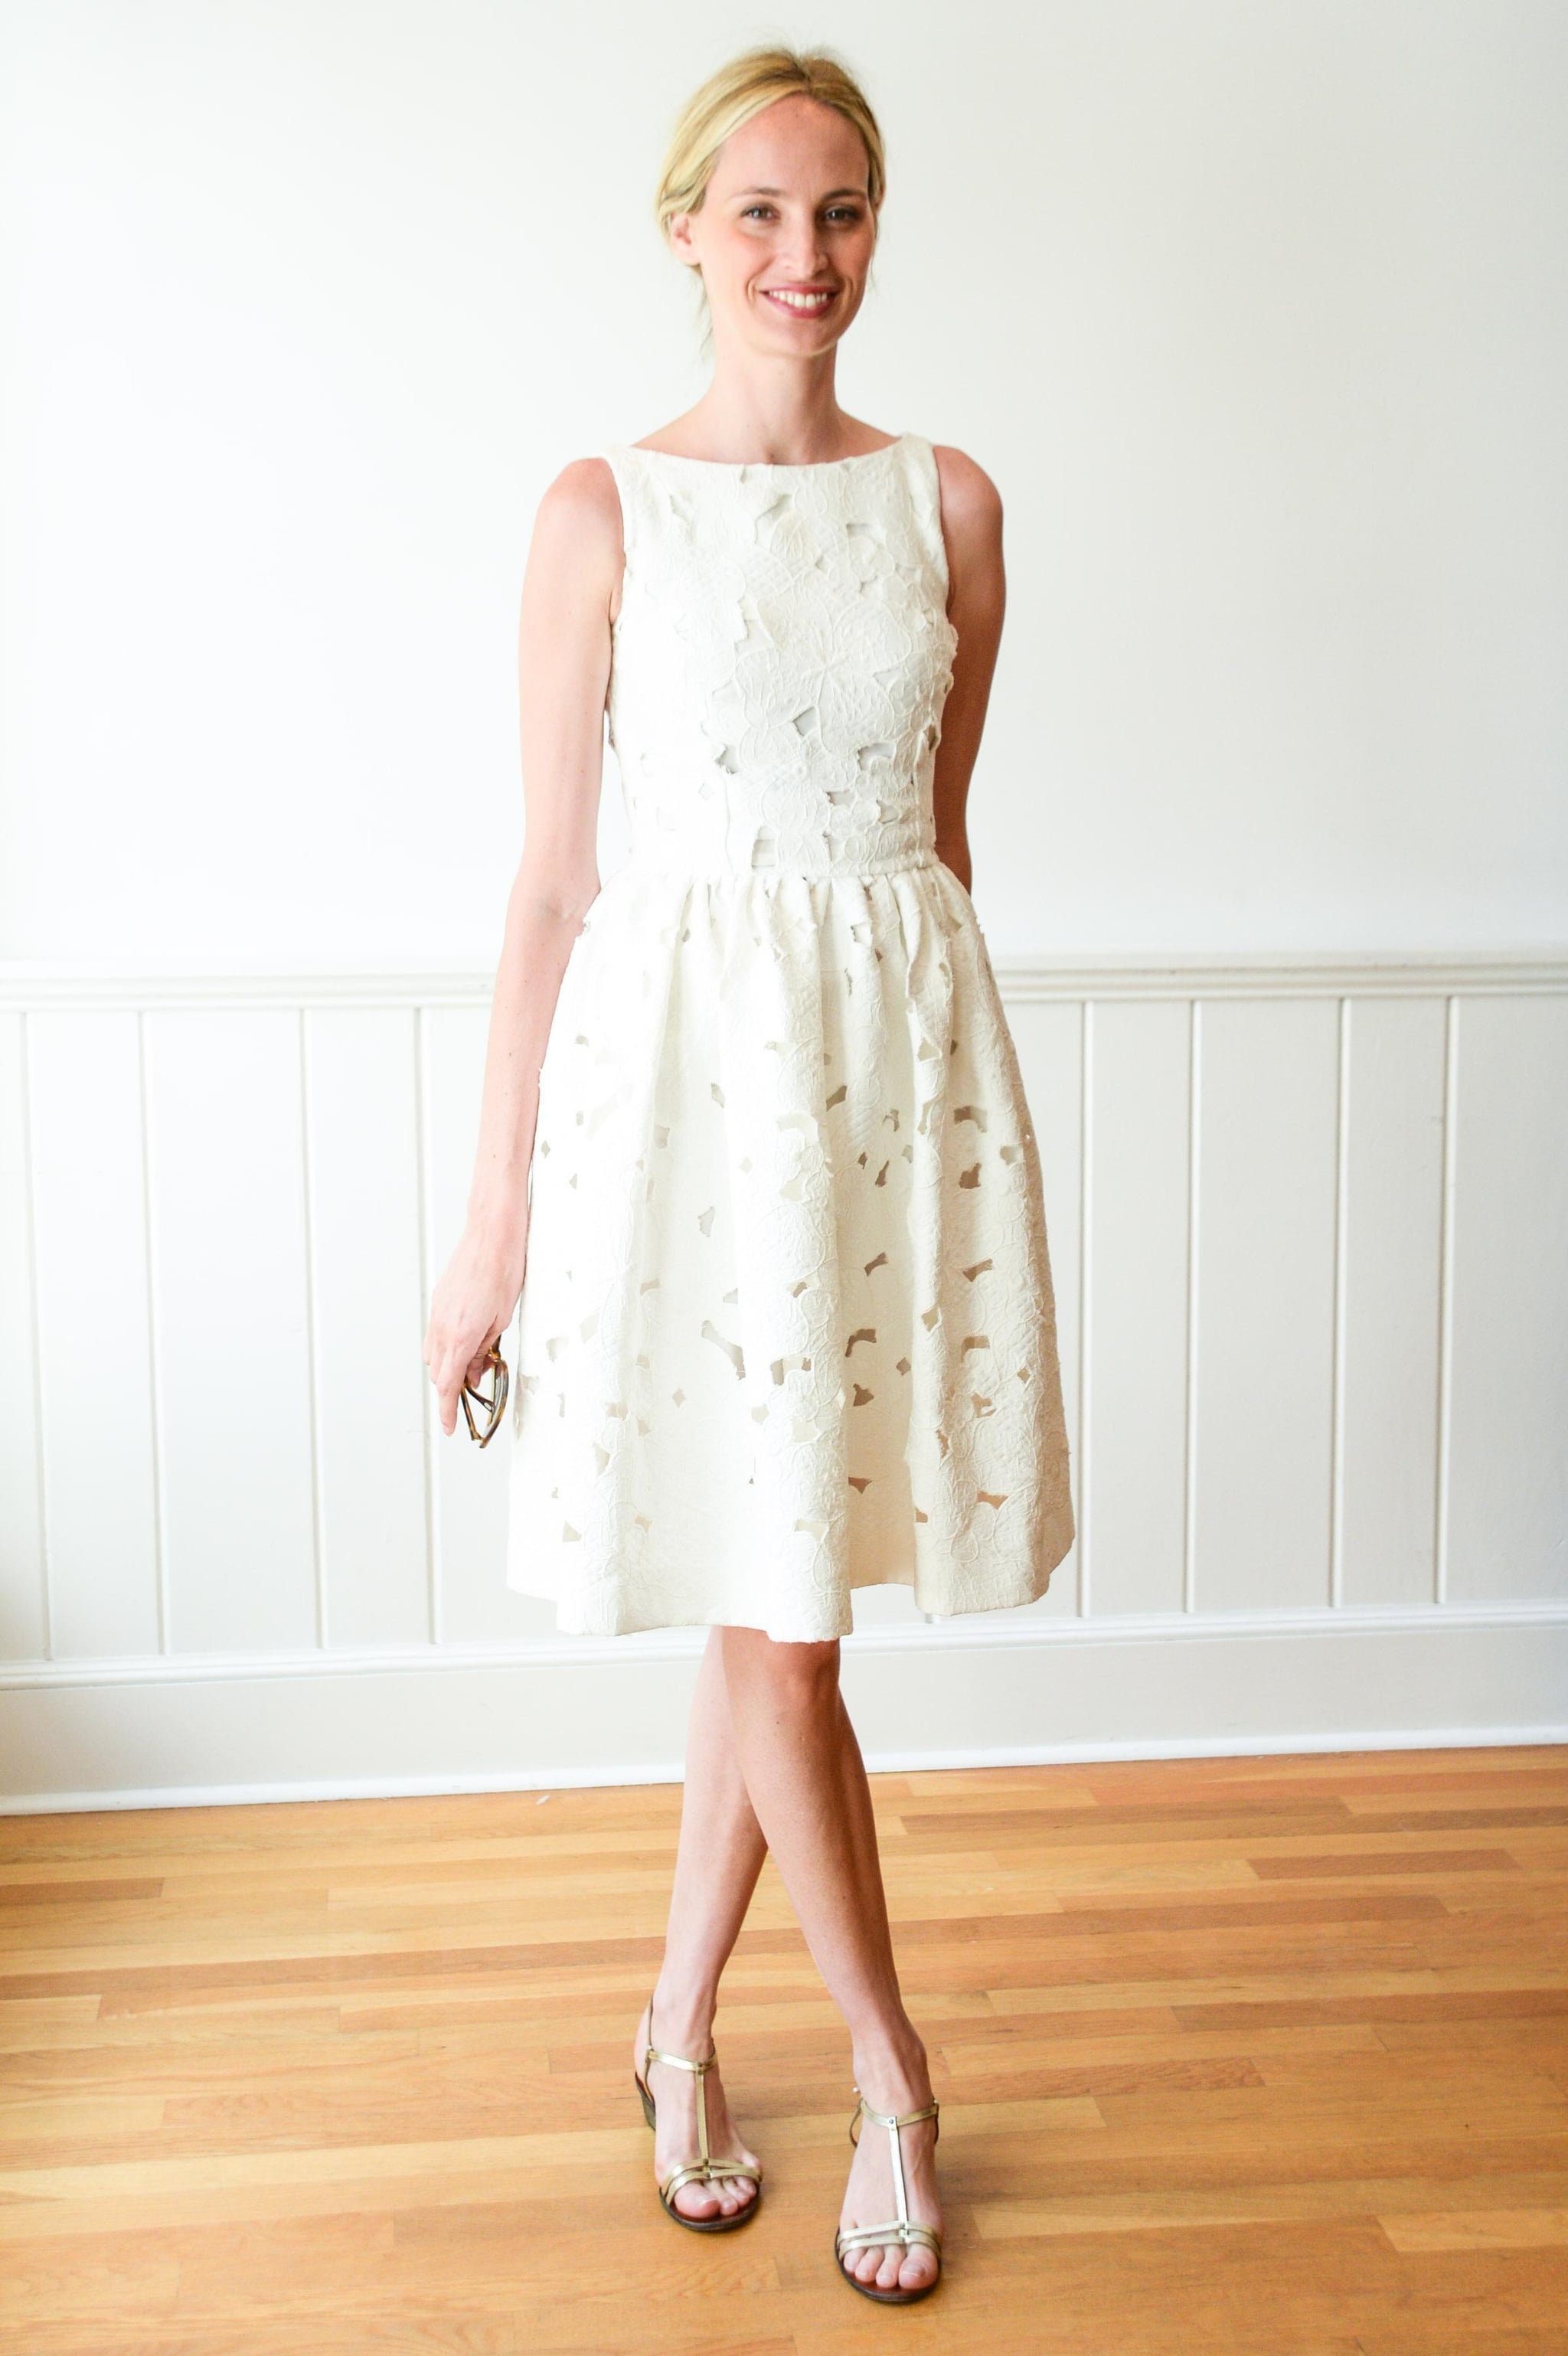 Lauren Santo Domingo caught our eye in her embroidered LWD at Dolce & Gabbana's Southampton event.